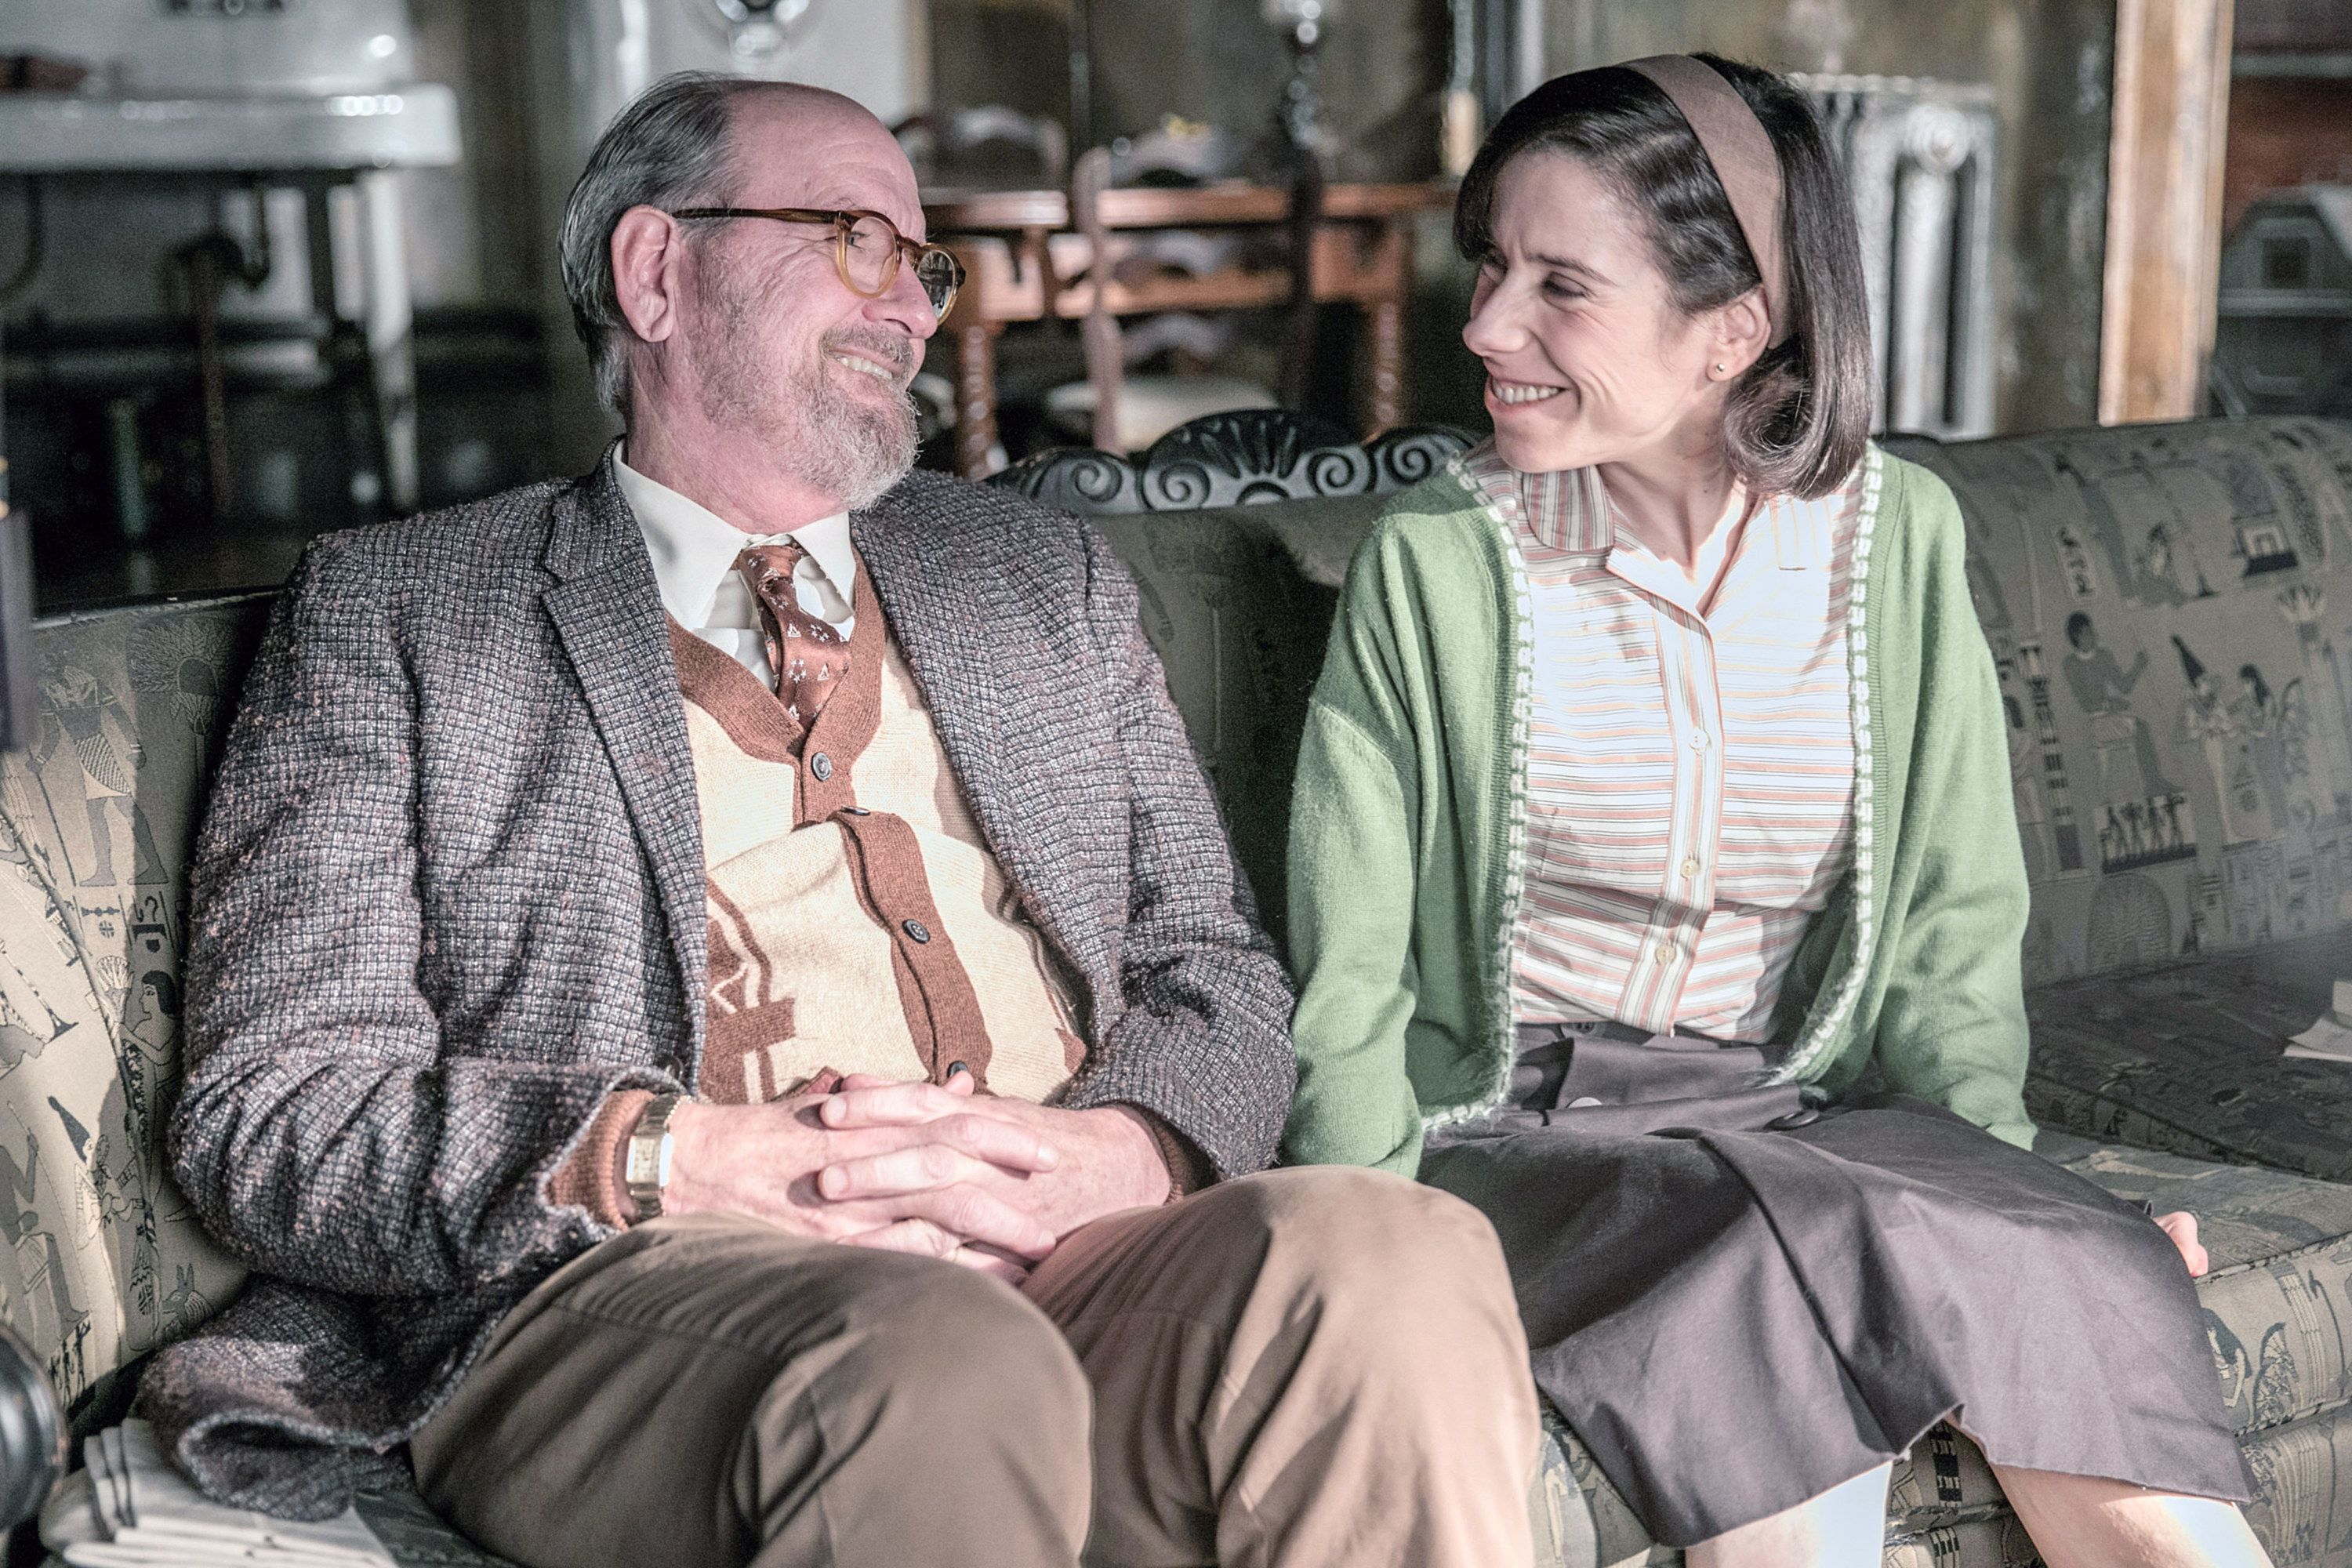 Richard Jenkins and Sally Hawkins sit on a couch